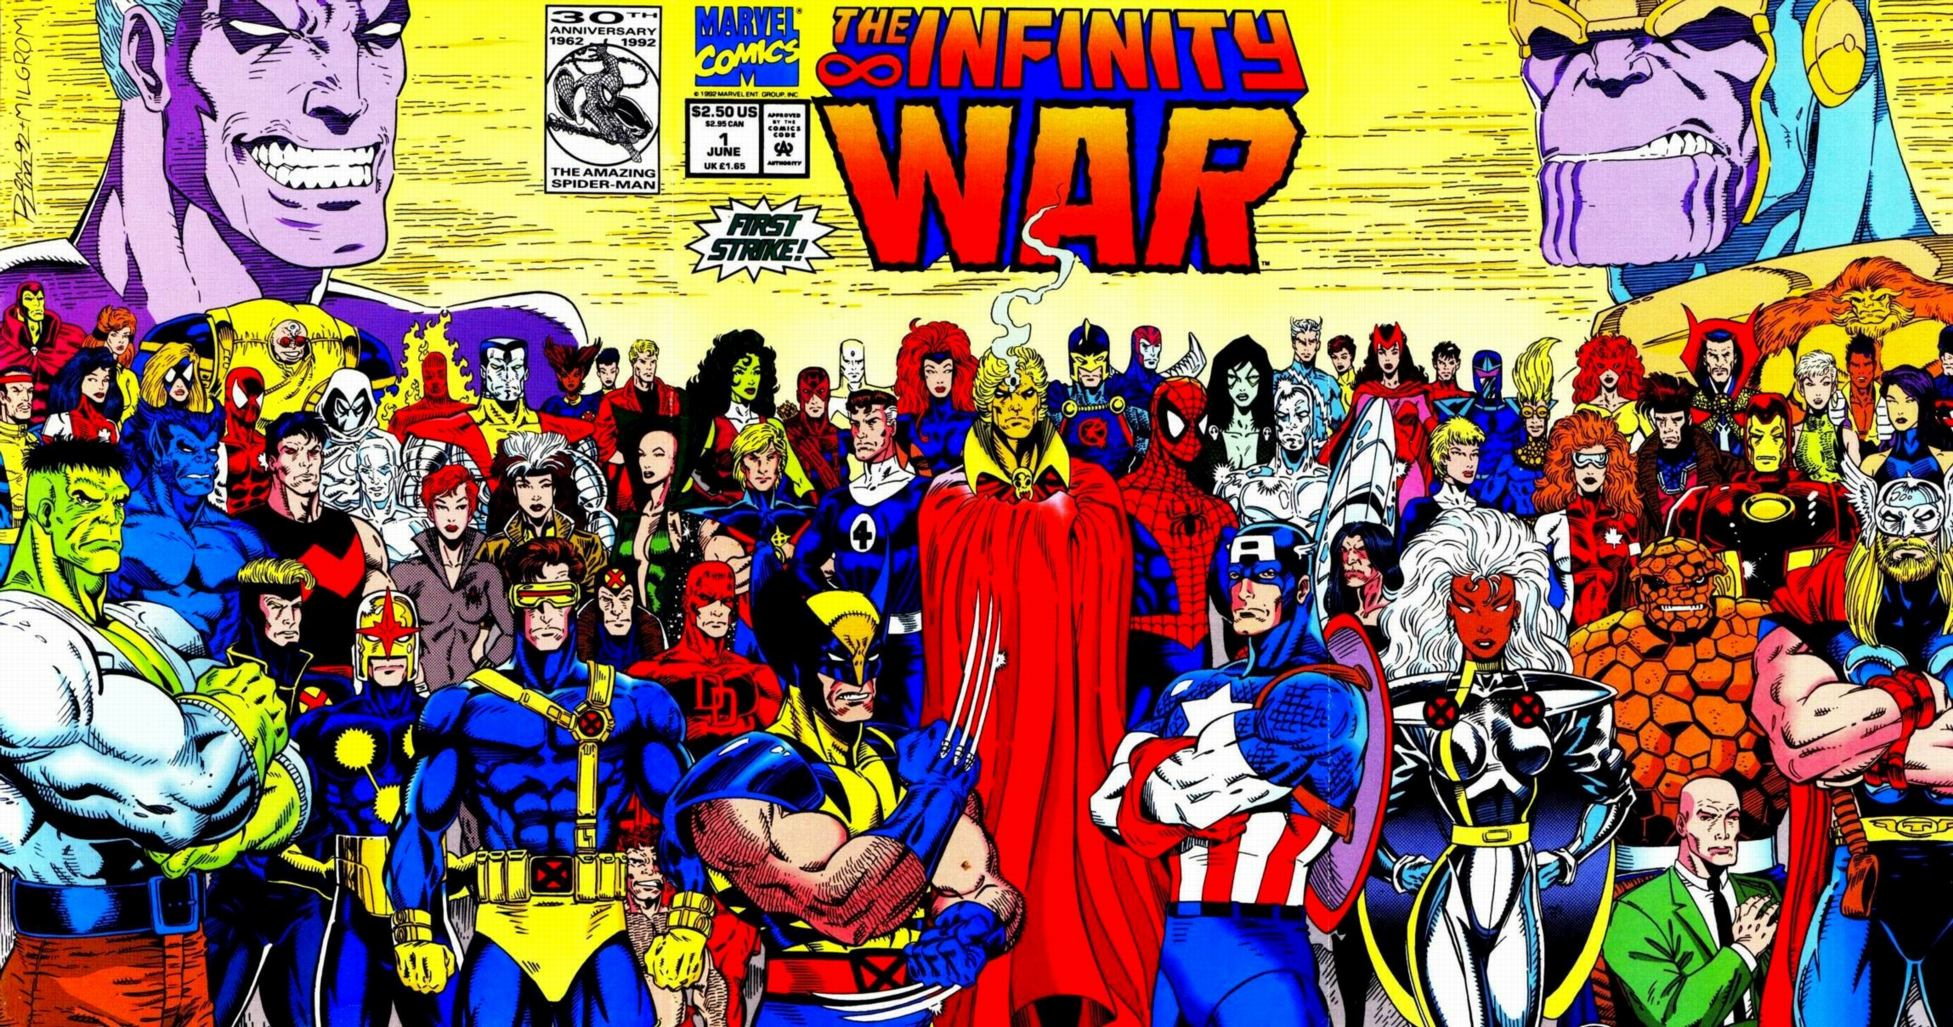 The Infinity War cover shows all of Marvel's heroes with Thanos looming over them